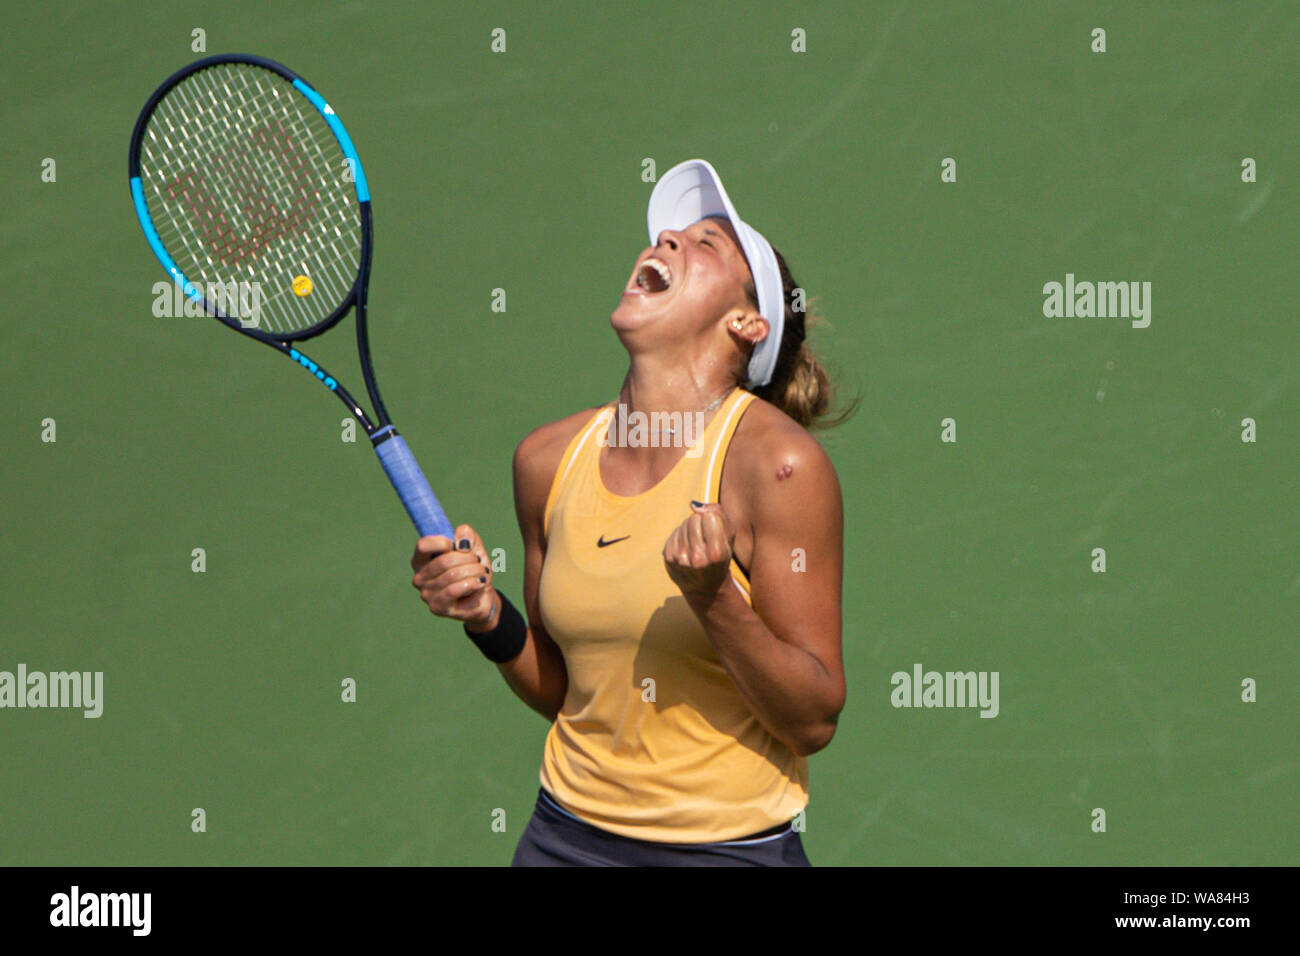 August 18, 2019, Mason, Ohio, USA: Madison Keys (USA) reacts after winning the Women's Final of the Western and Southern Open at the Lindner Family Tennis Center, Mason, Oh. (Credit Image: © Scott Stuart/ZUMA Wire) Stock Photo